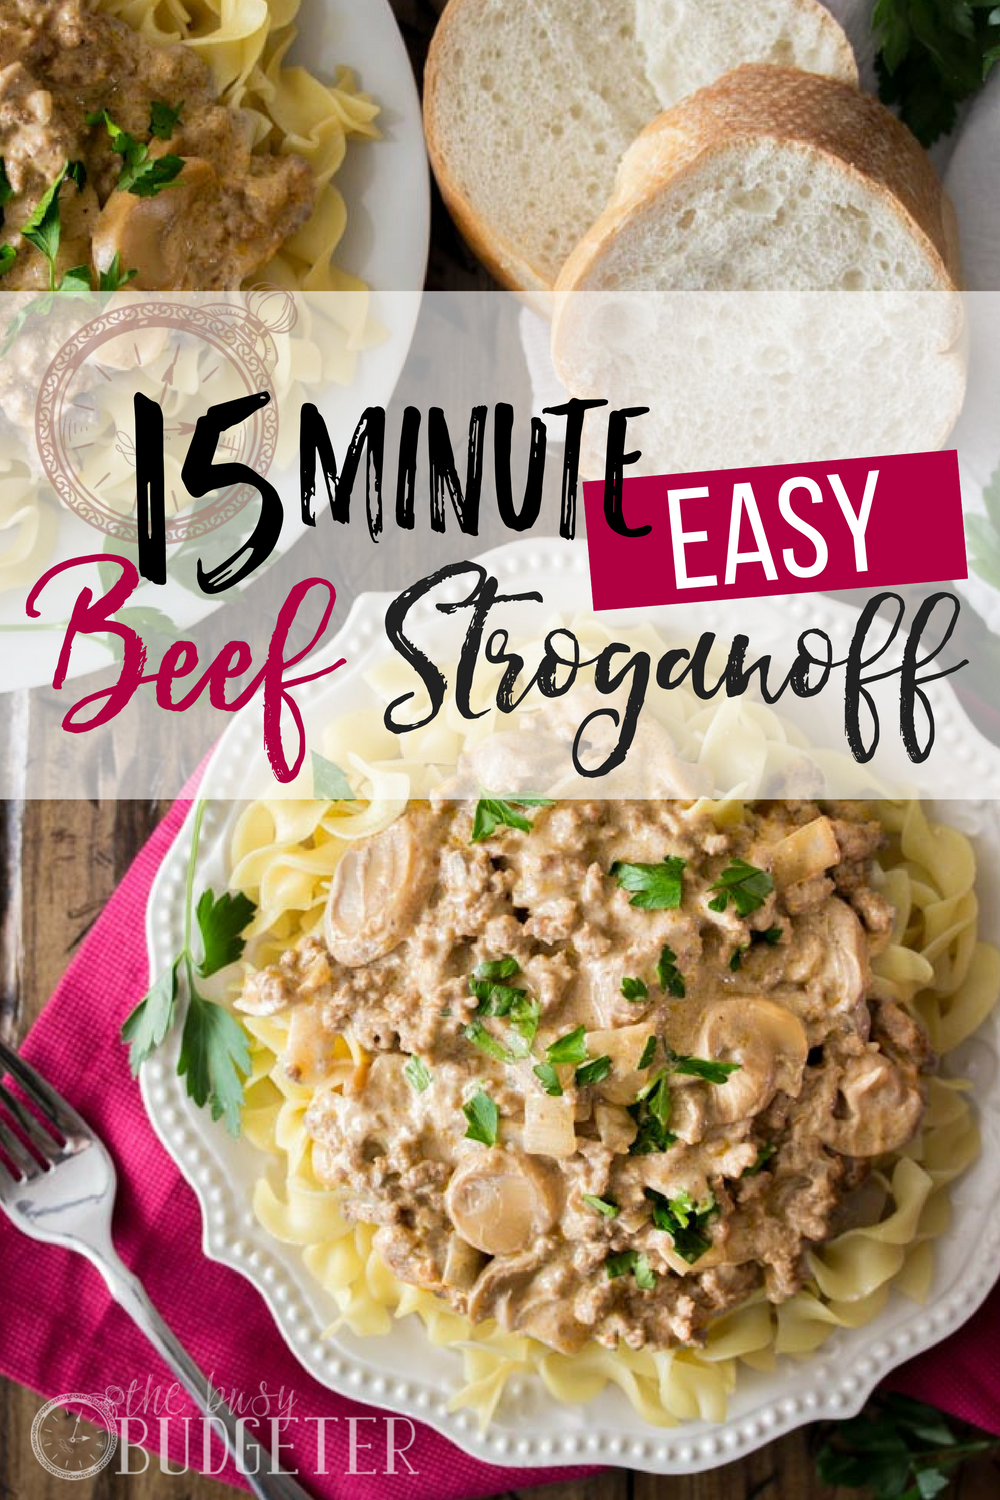 15 Minute Easy Beef Stroganoff- I love comfort food recipes! This 15 Minute Beef Stroganoff was a hit with the whole family and we ate the leftovers for lunch the next day. 2 meals that all of my kids ate. Now that's a win!